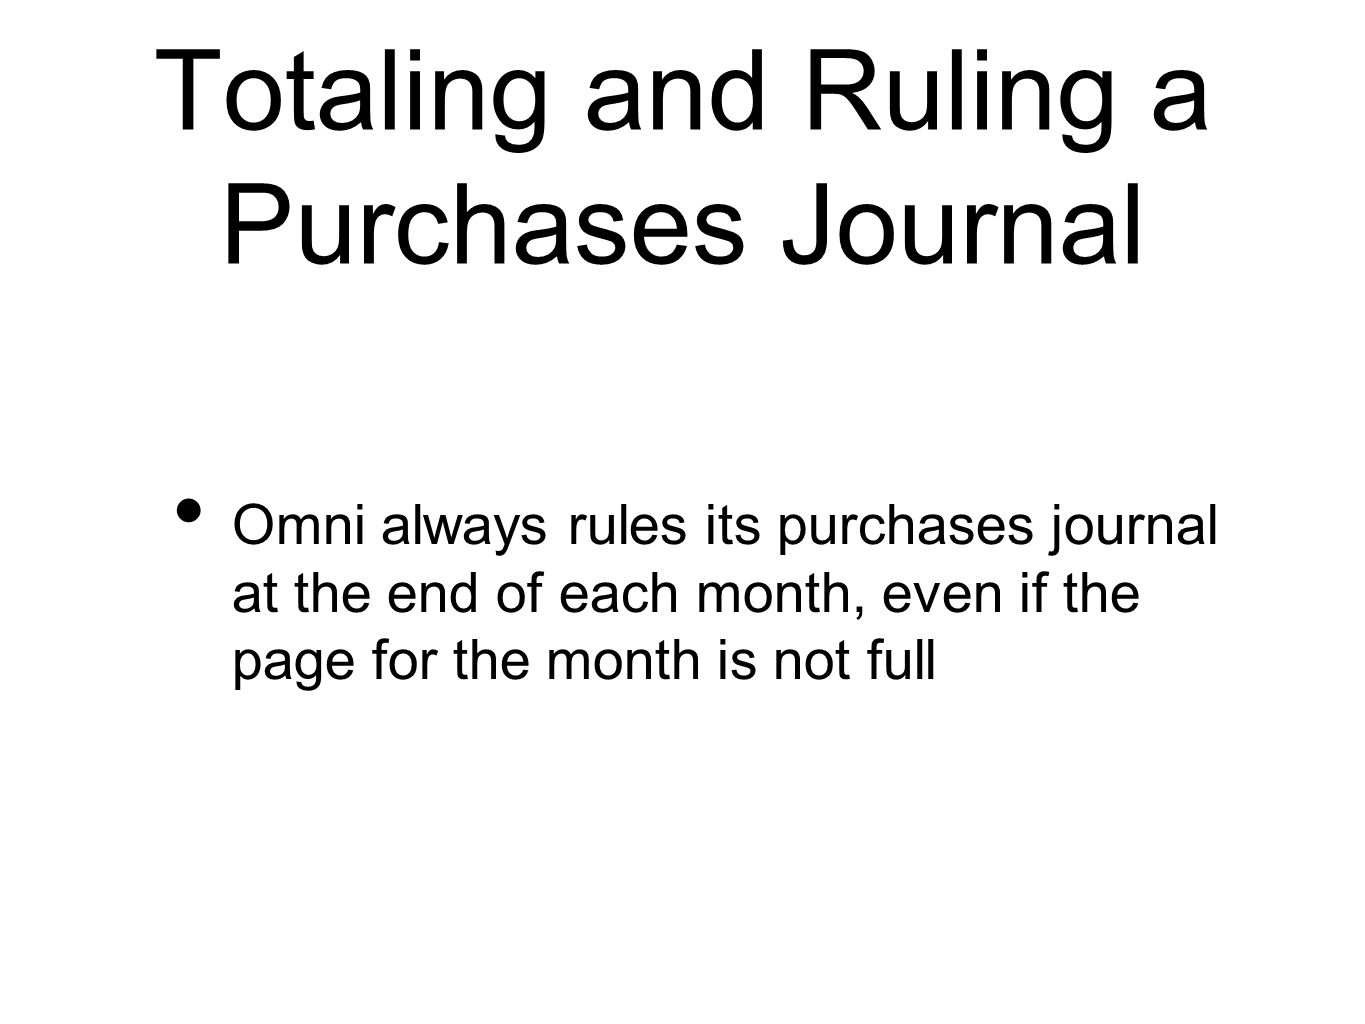 Totaling and Ruling a Purchases Journal